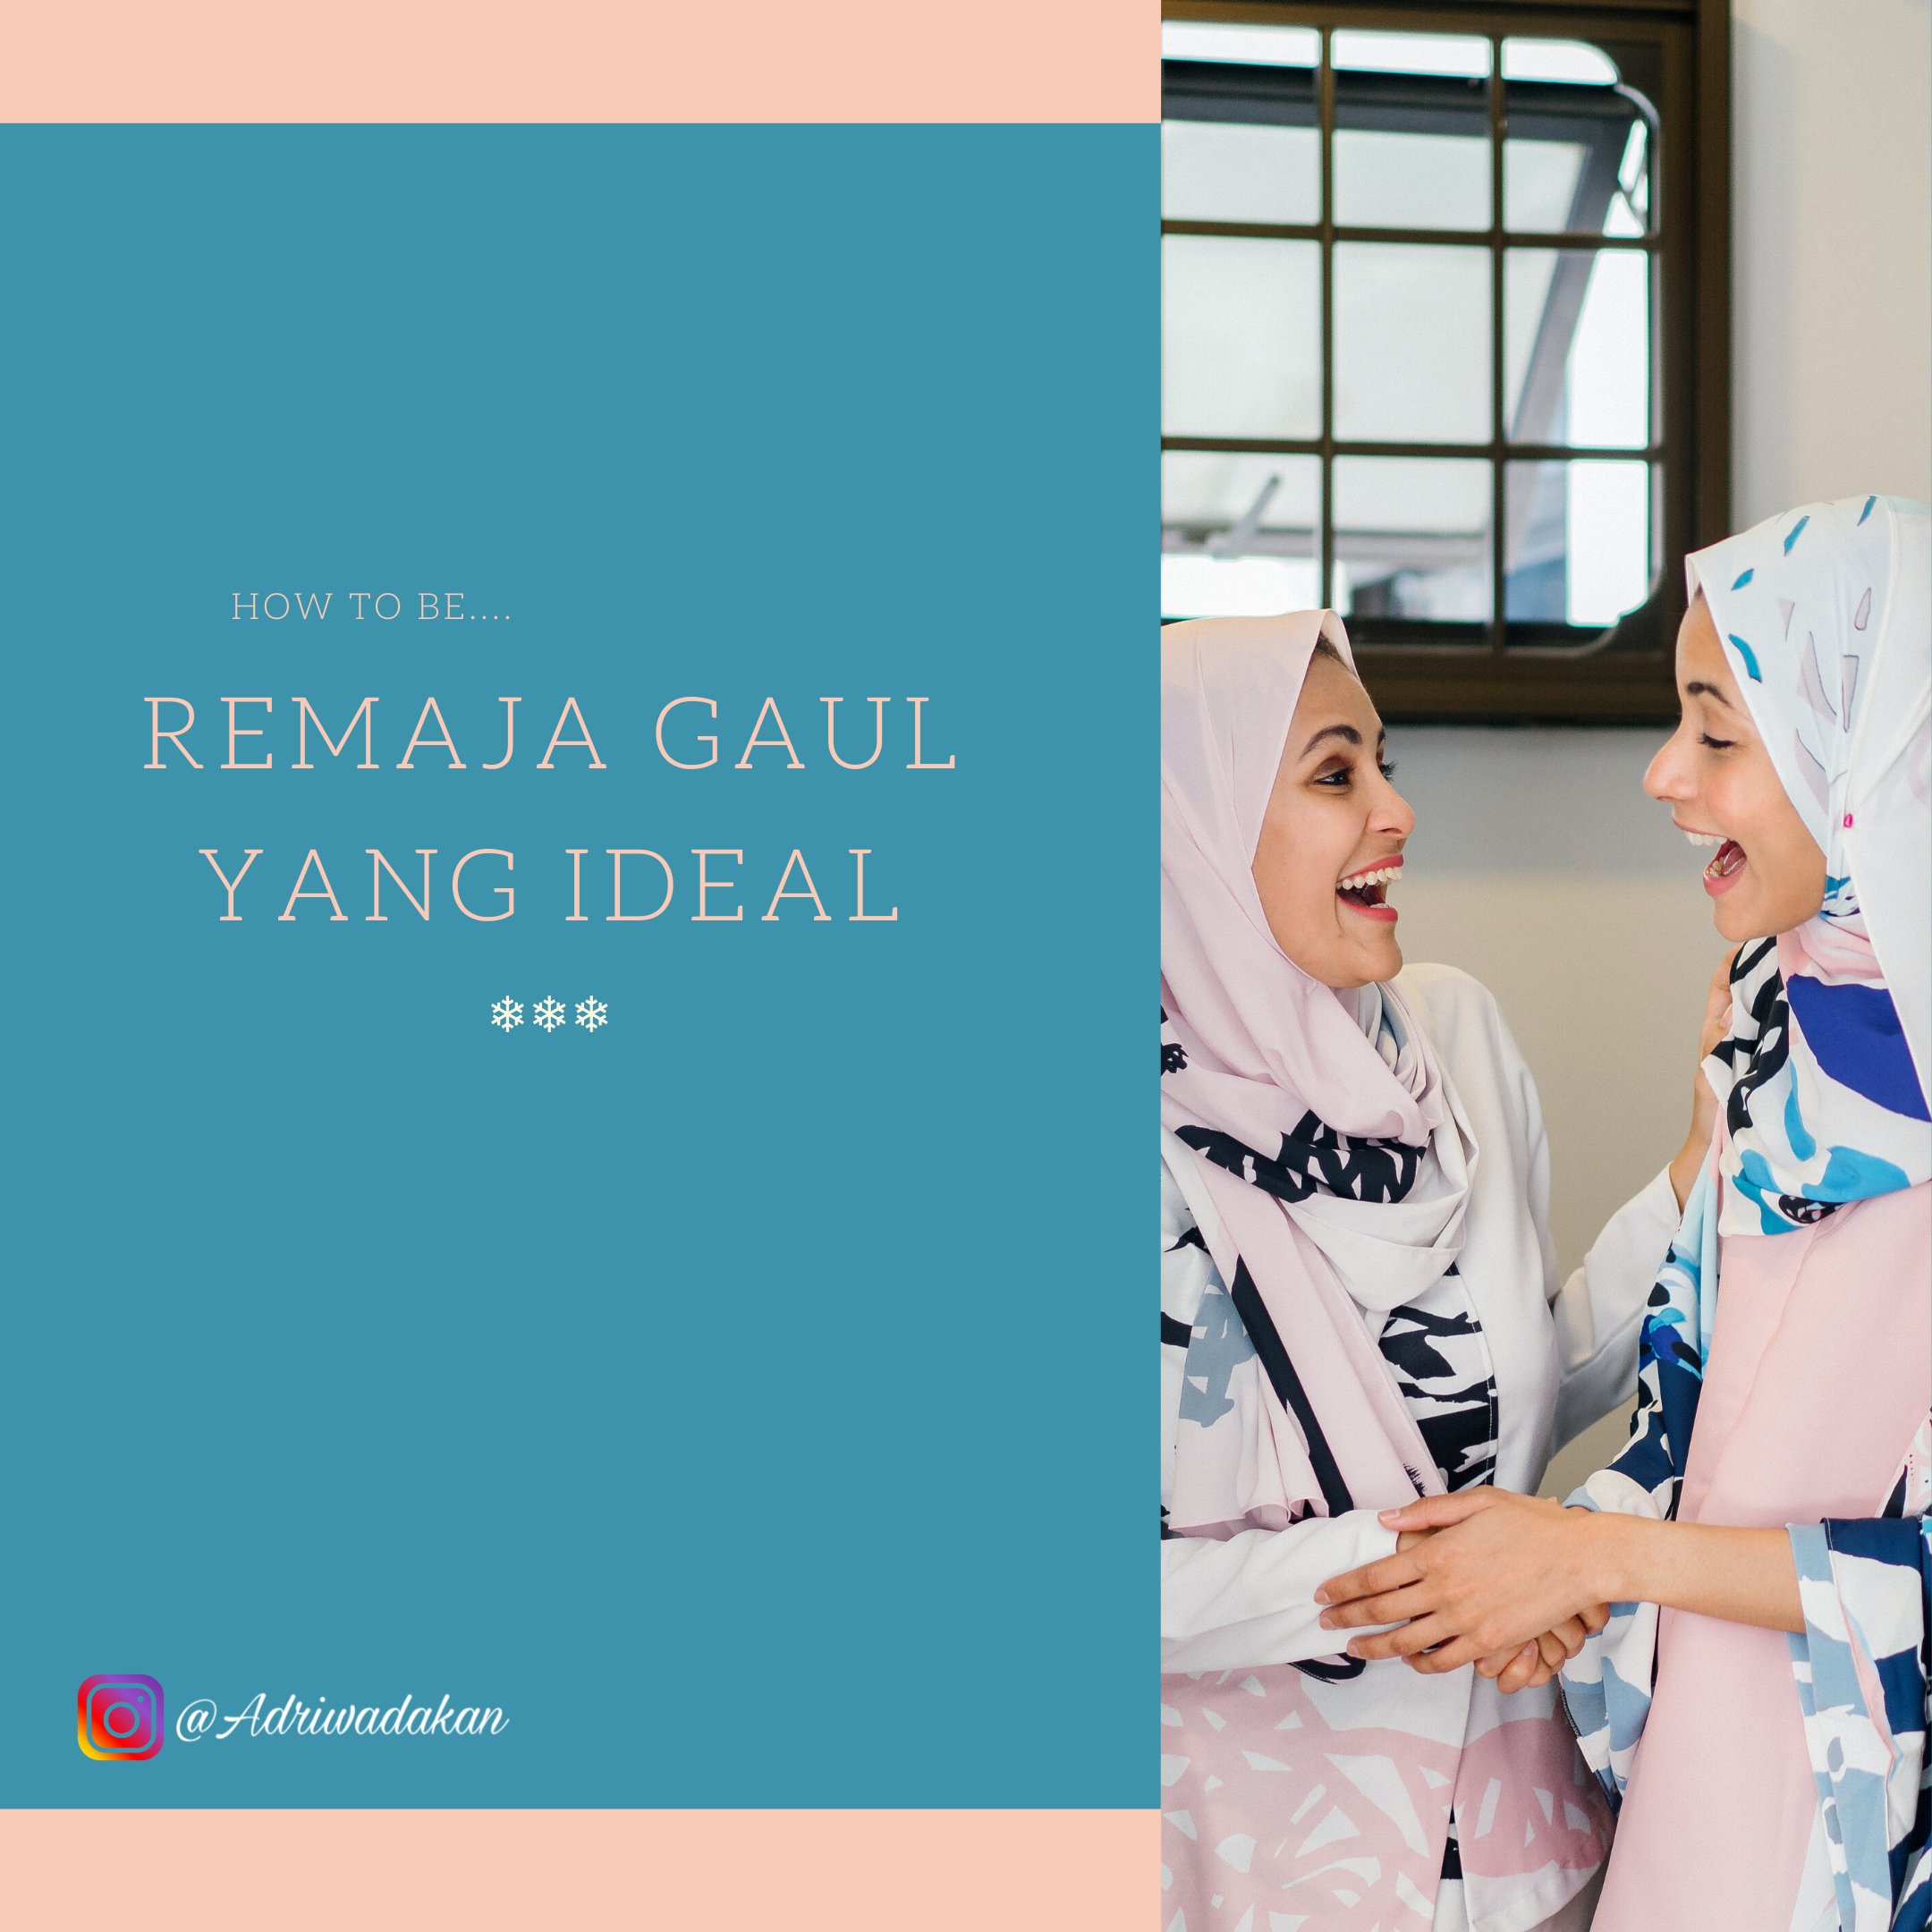 How to be REMAJA GAUL YANG IDEAL